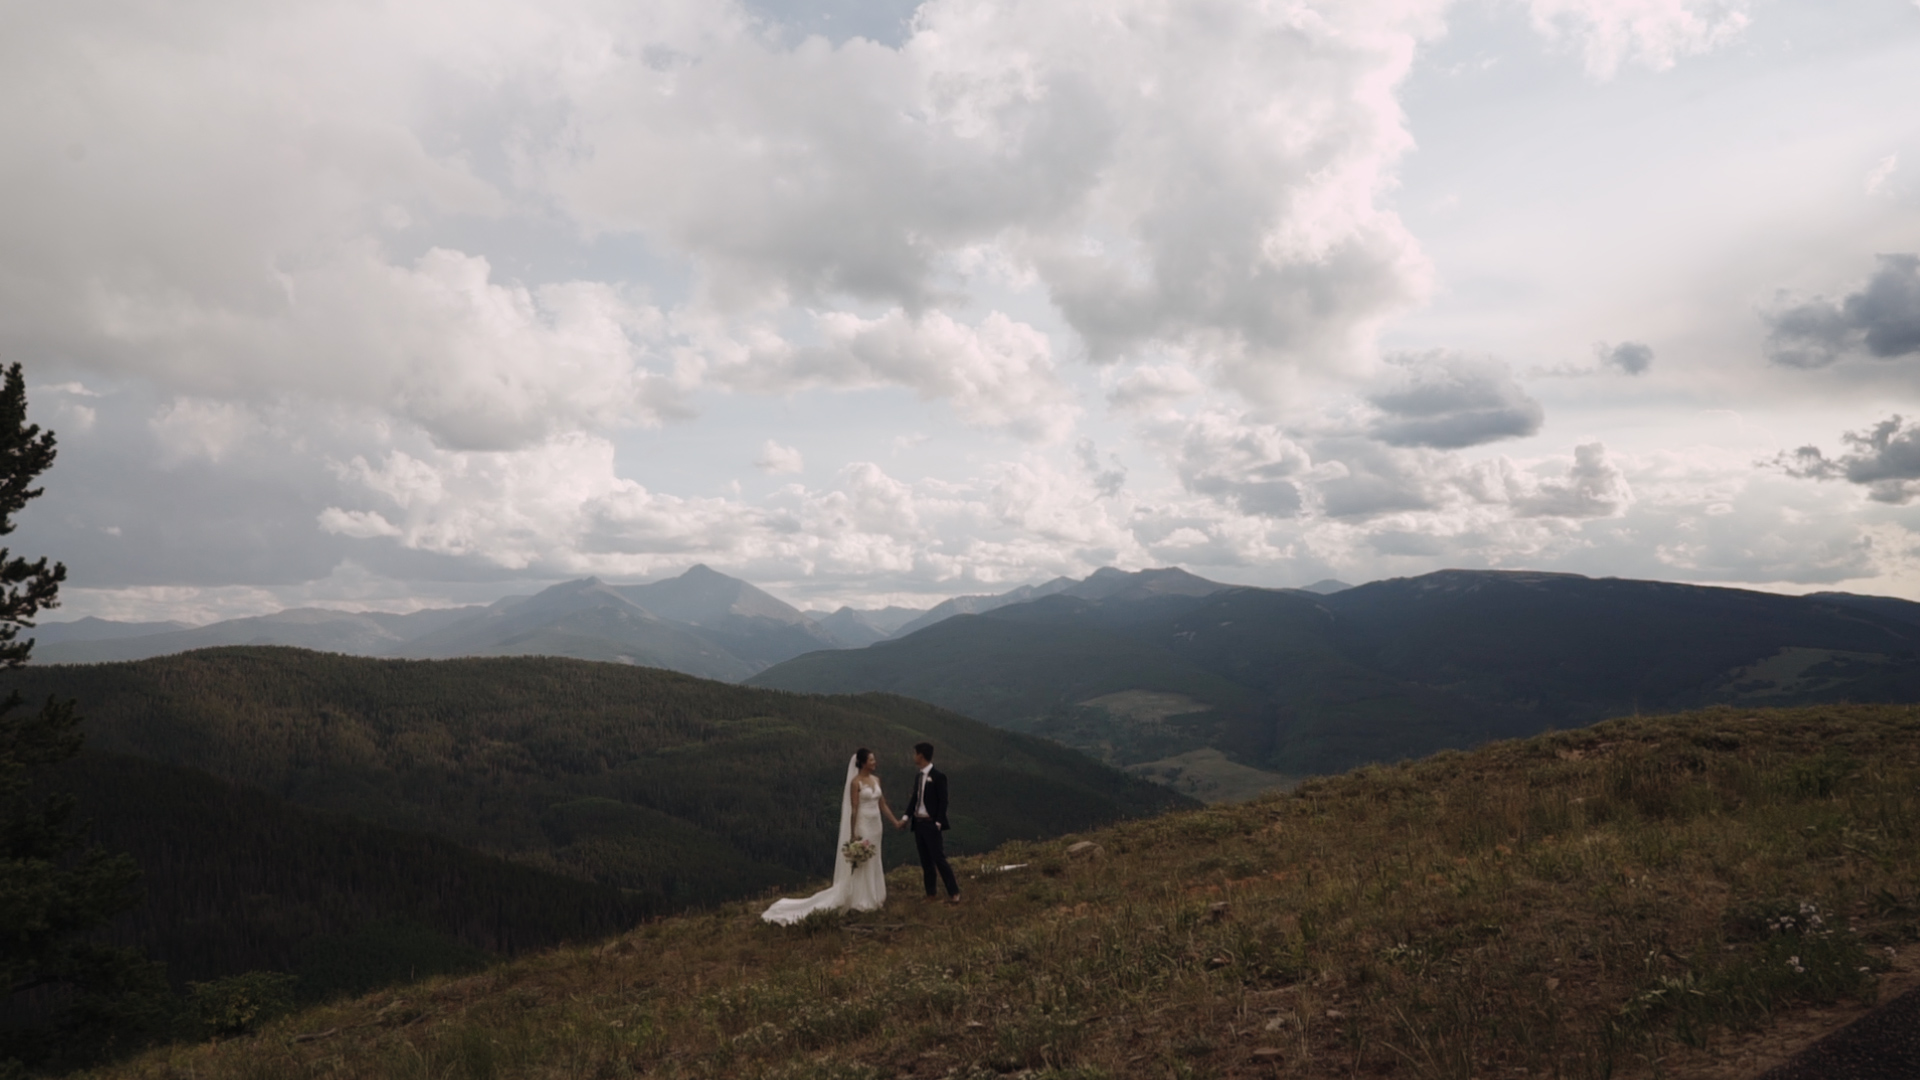 Tricia + Peter | Vail, Colorado | The Arrabelle at Vail